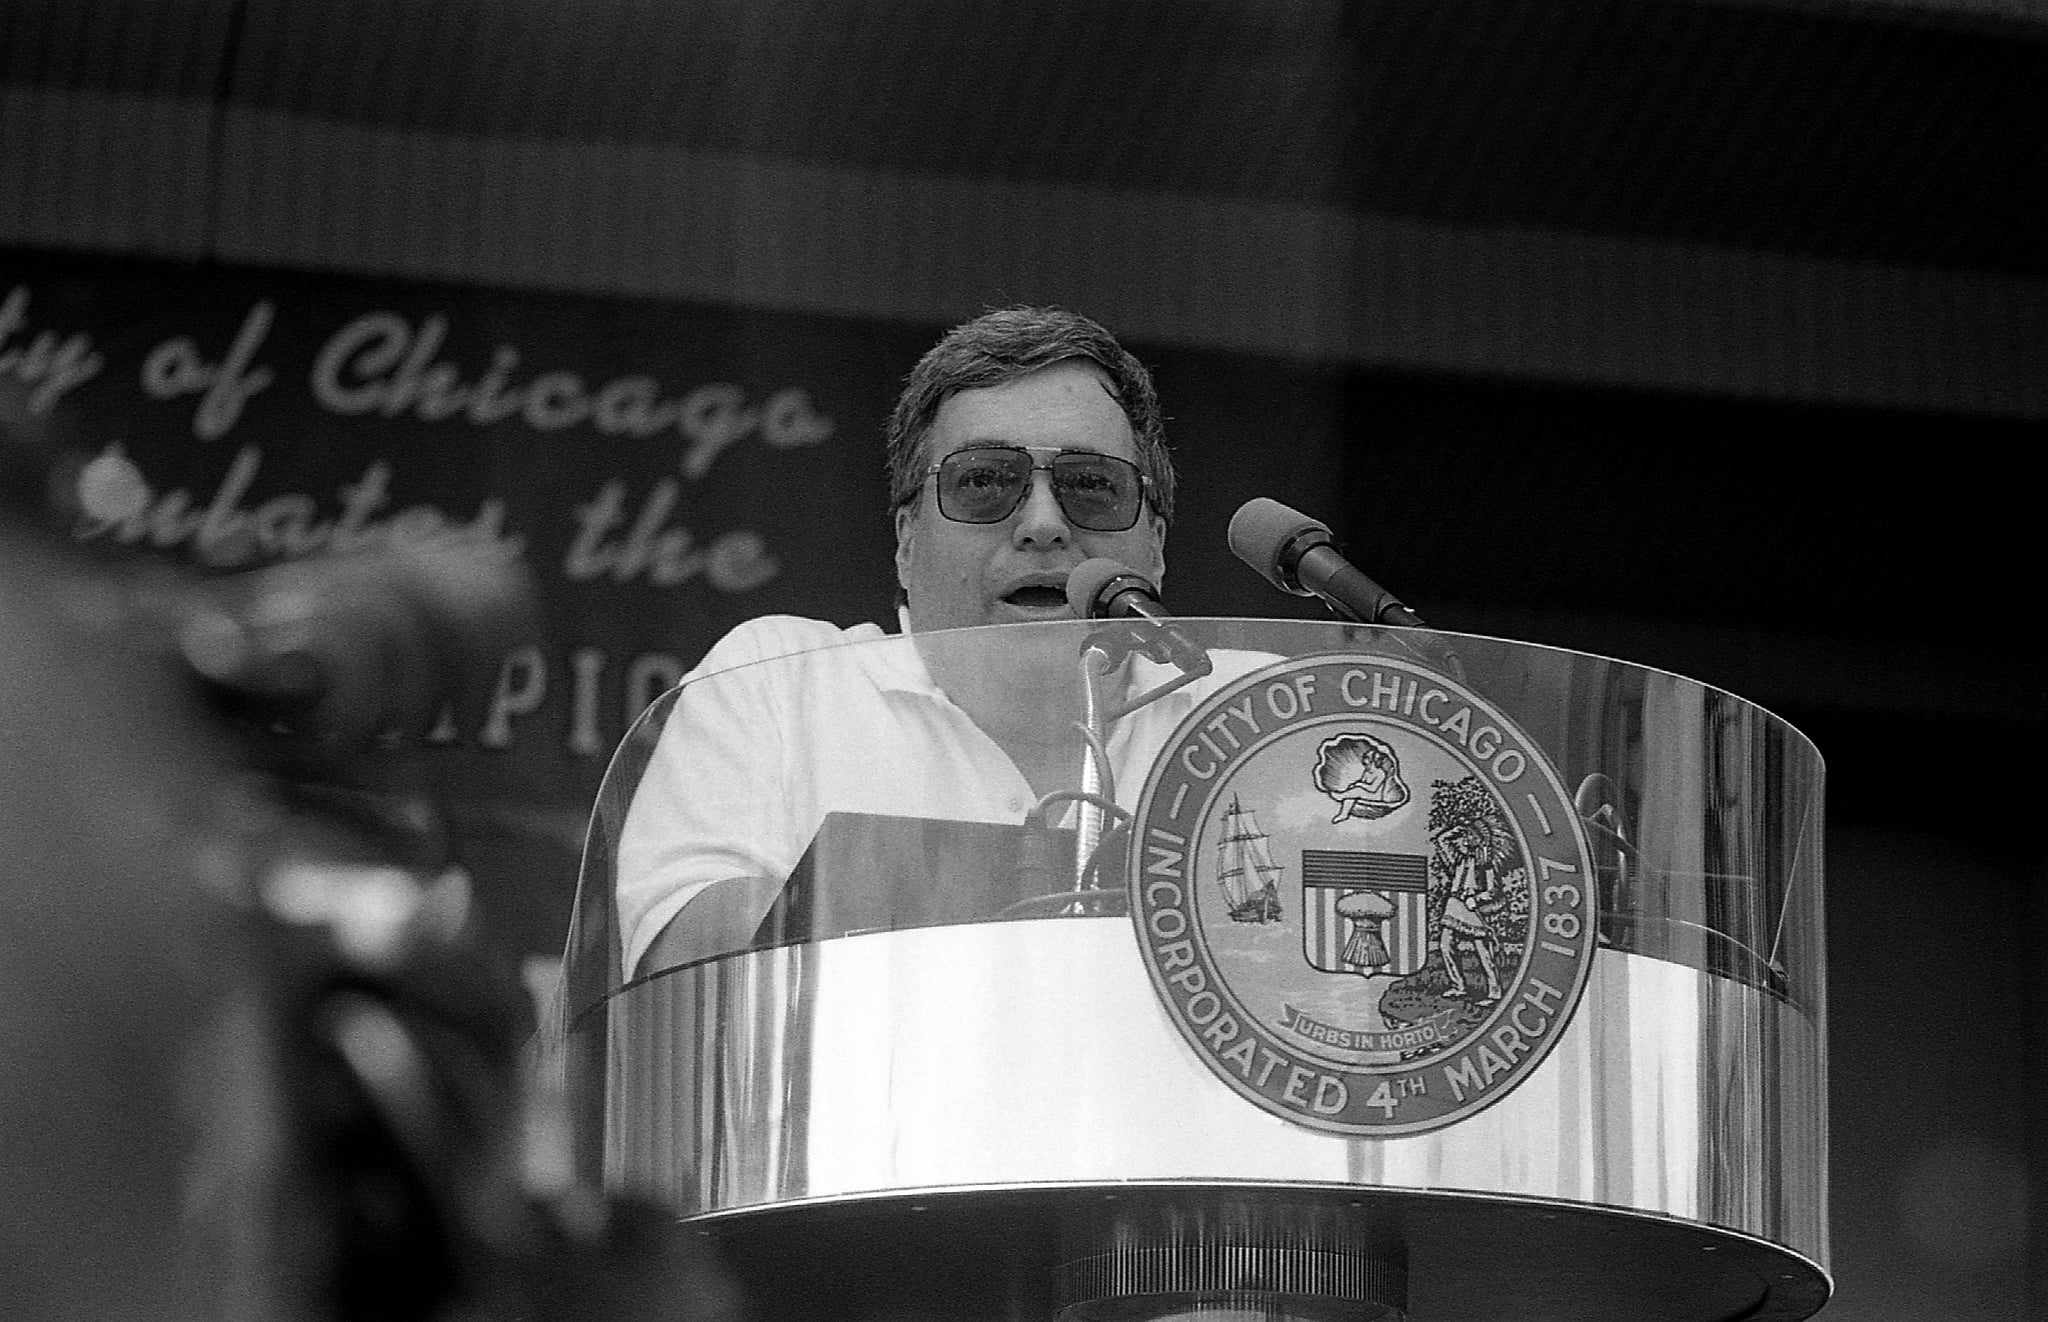 CHICAGO -  JUNE 1996:  Former Chicago Bulls General Manager Jerry Krause addresses the crowd during a celebration of the Chicago Bulls' 4th N.B.A. Championship at the Petrillo Music Shell in Chicago, Illinois in June1996.  (Photo By Raymond Boyd/Getty Images)